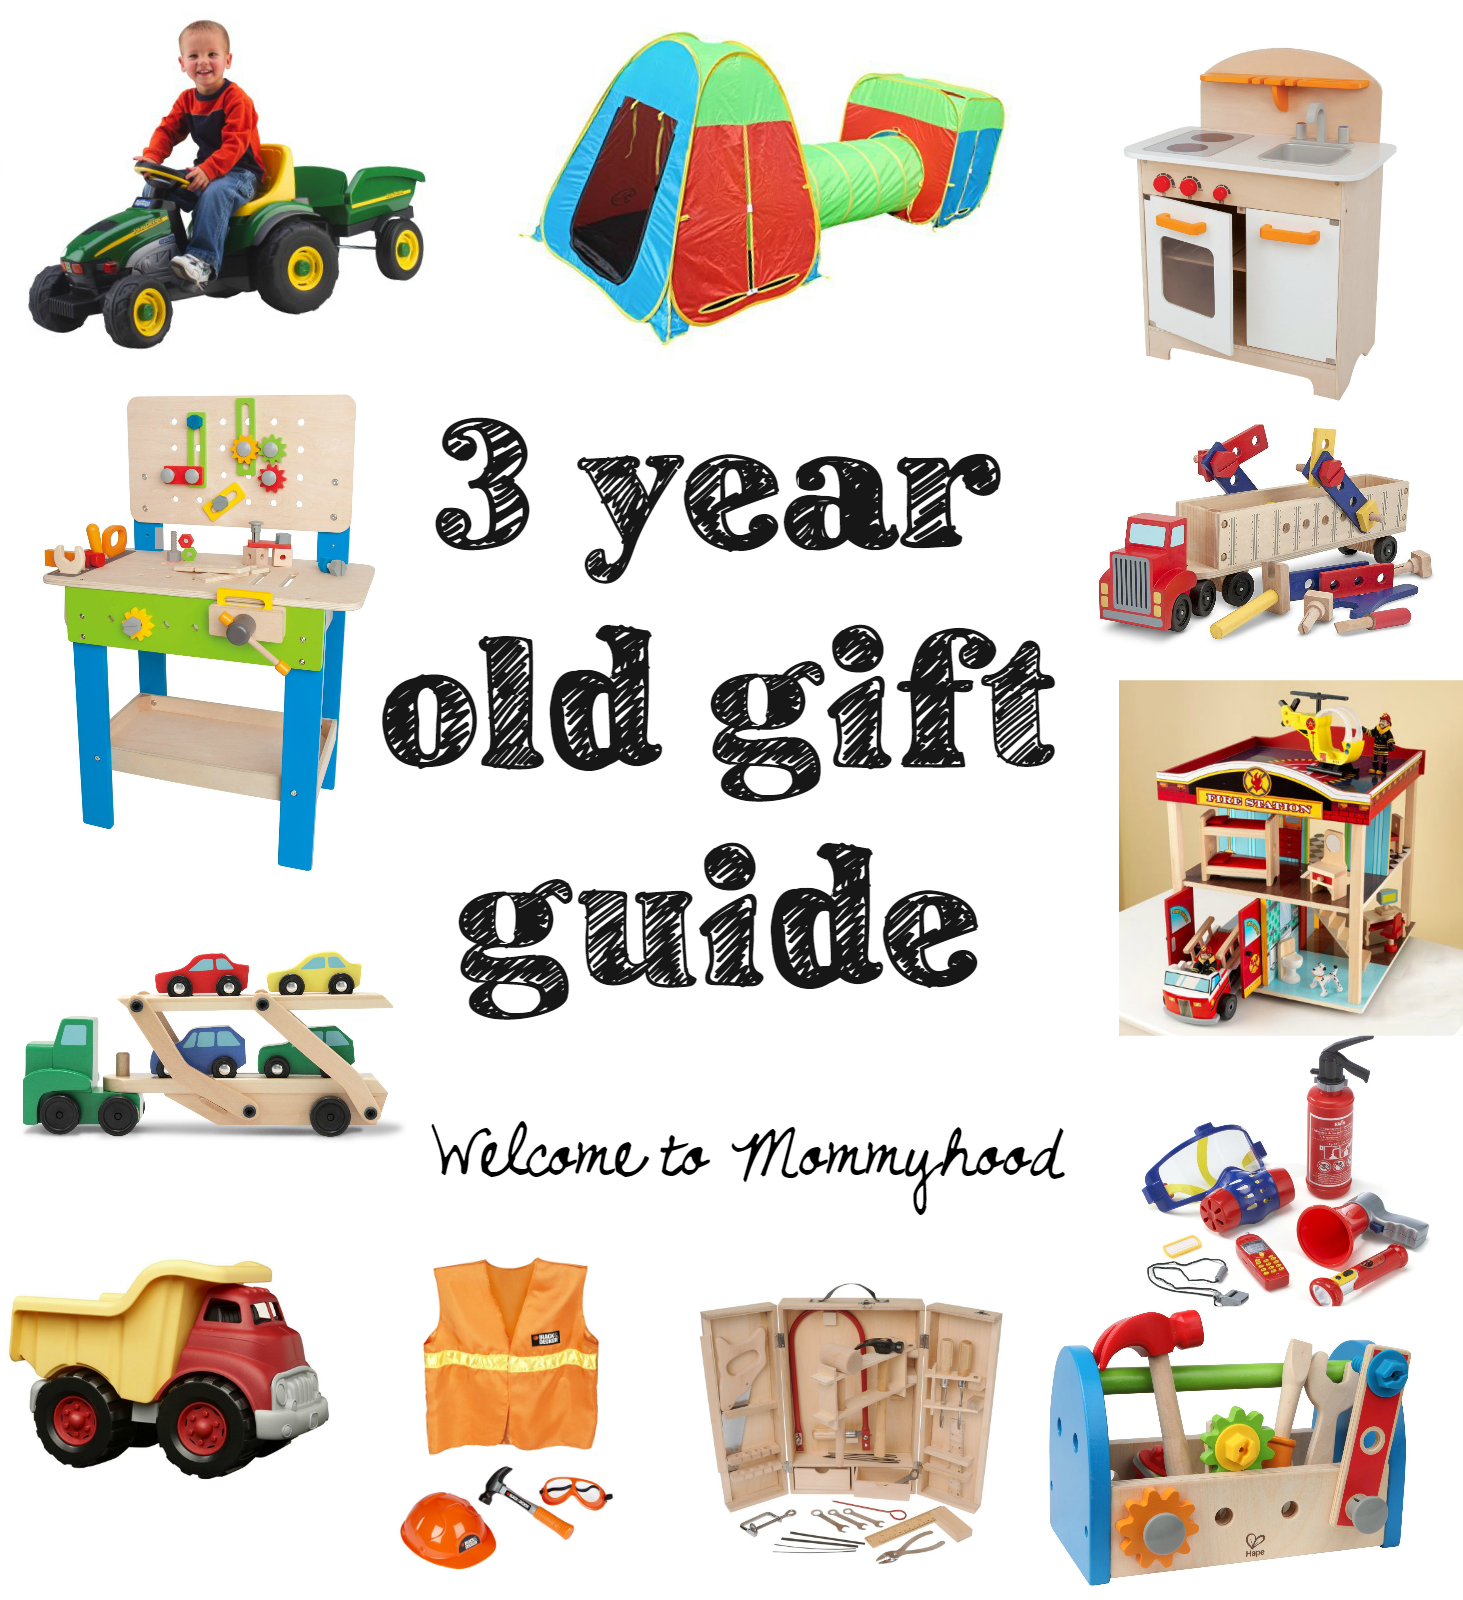 Birthday Quotes For A 3 Year Old Son : Welcome to mommyhood birthday gift ideas for a year old